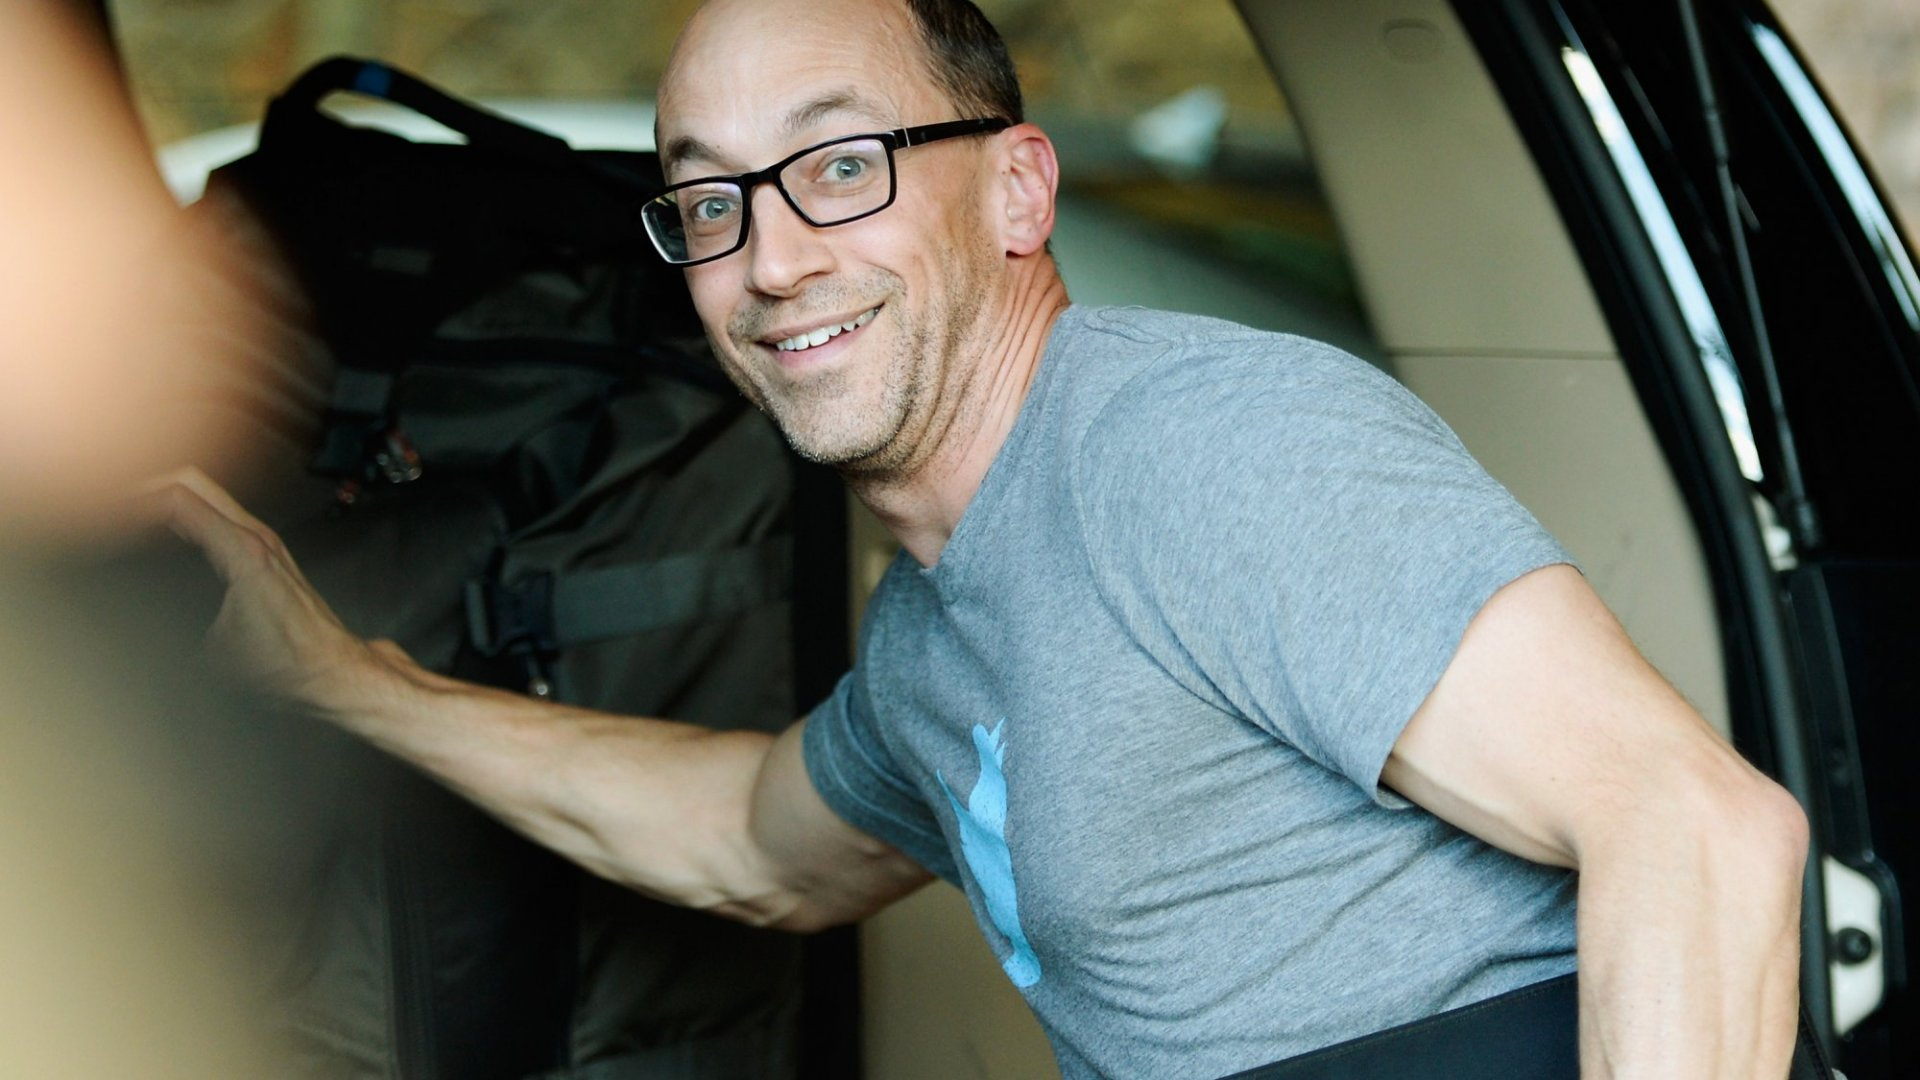 Dick Costolo Channels His Fitness Obsession Into a Startup